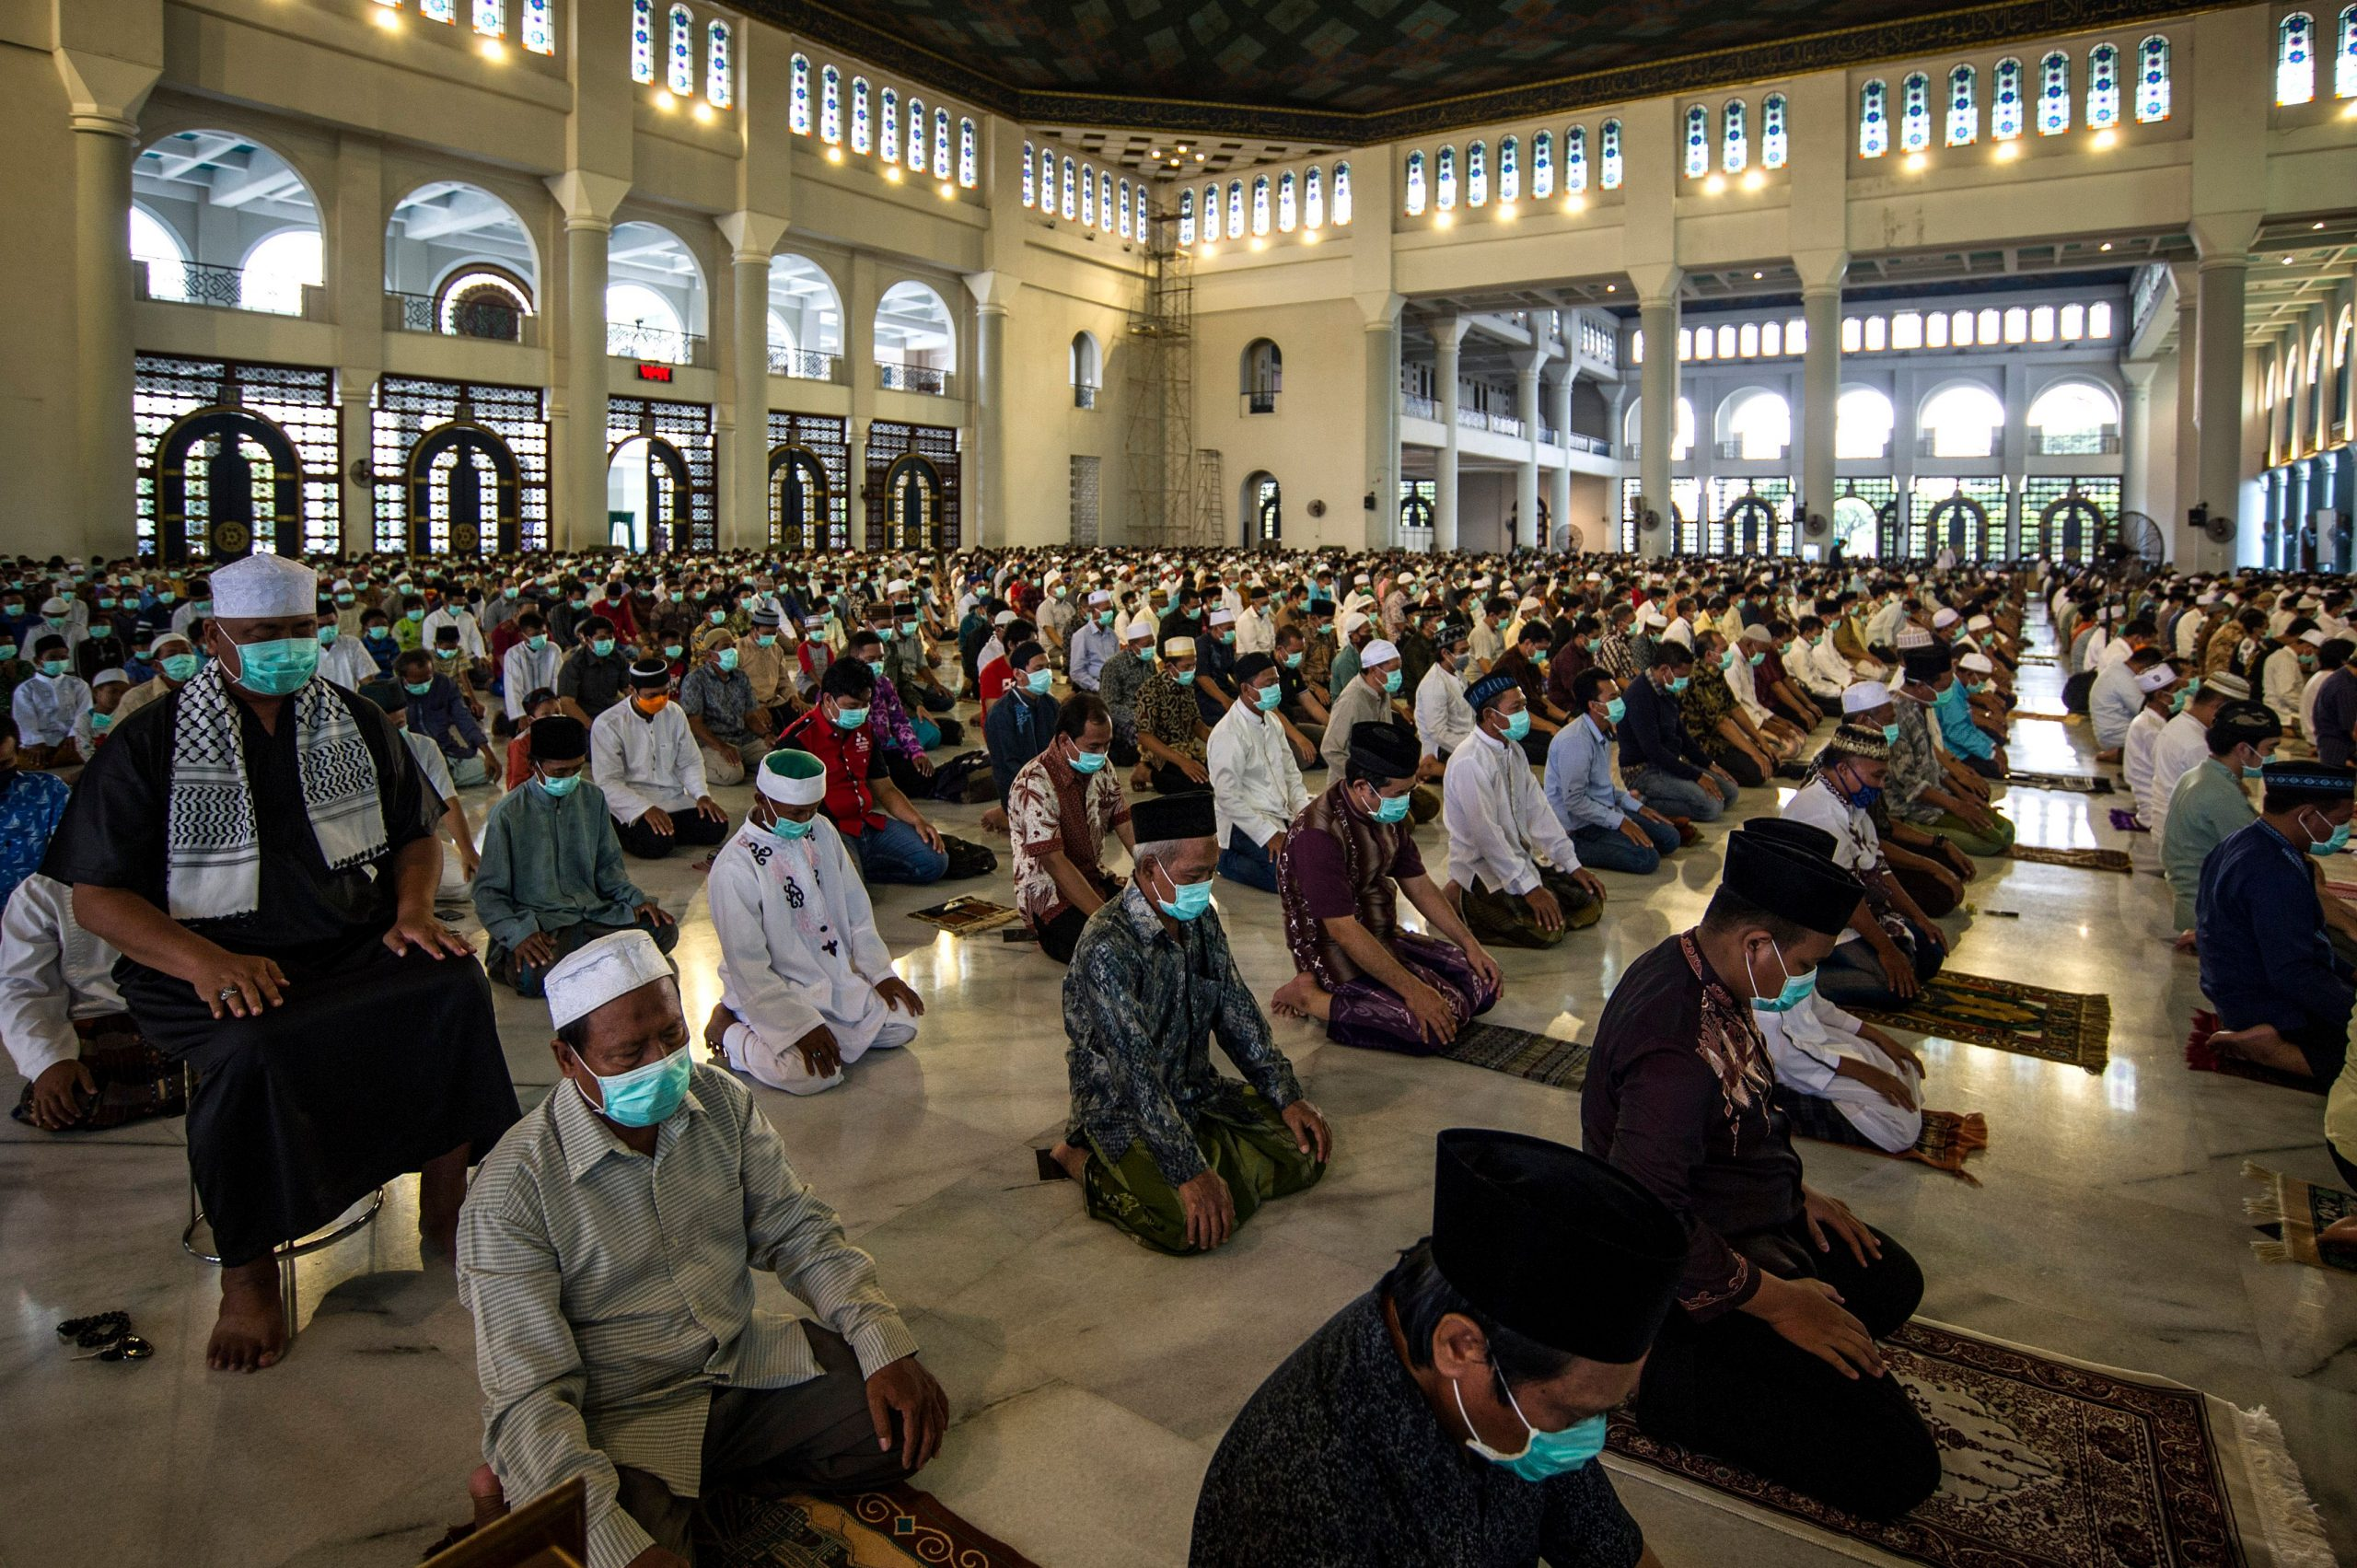 Indonesians attend Friday prayers at a mosque in Surabaya, East Java on March 27, 2020. (Photo by JUNI KRISWANTO / AFP) (Photo by JUNI KRISWANTO/AFP via Getty Images)